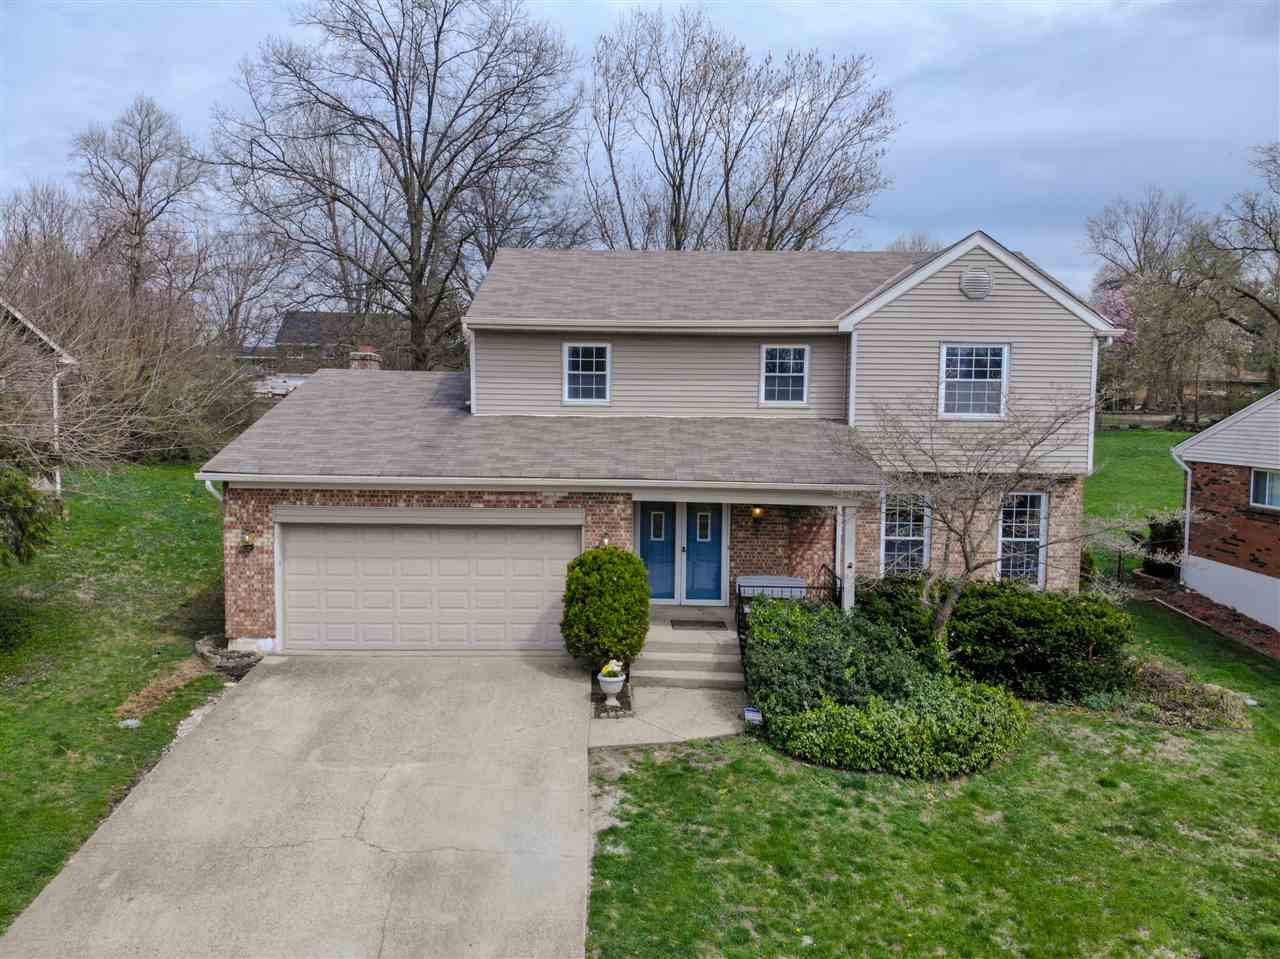 Photo 2 for 840 Rogers Drive Villa Hills, KY 41017